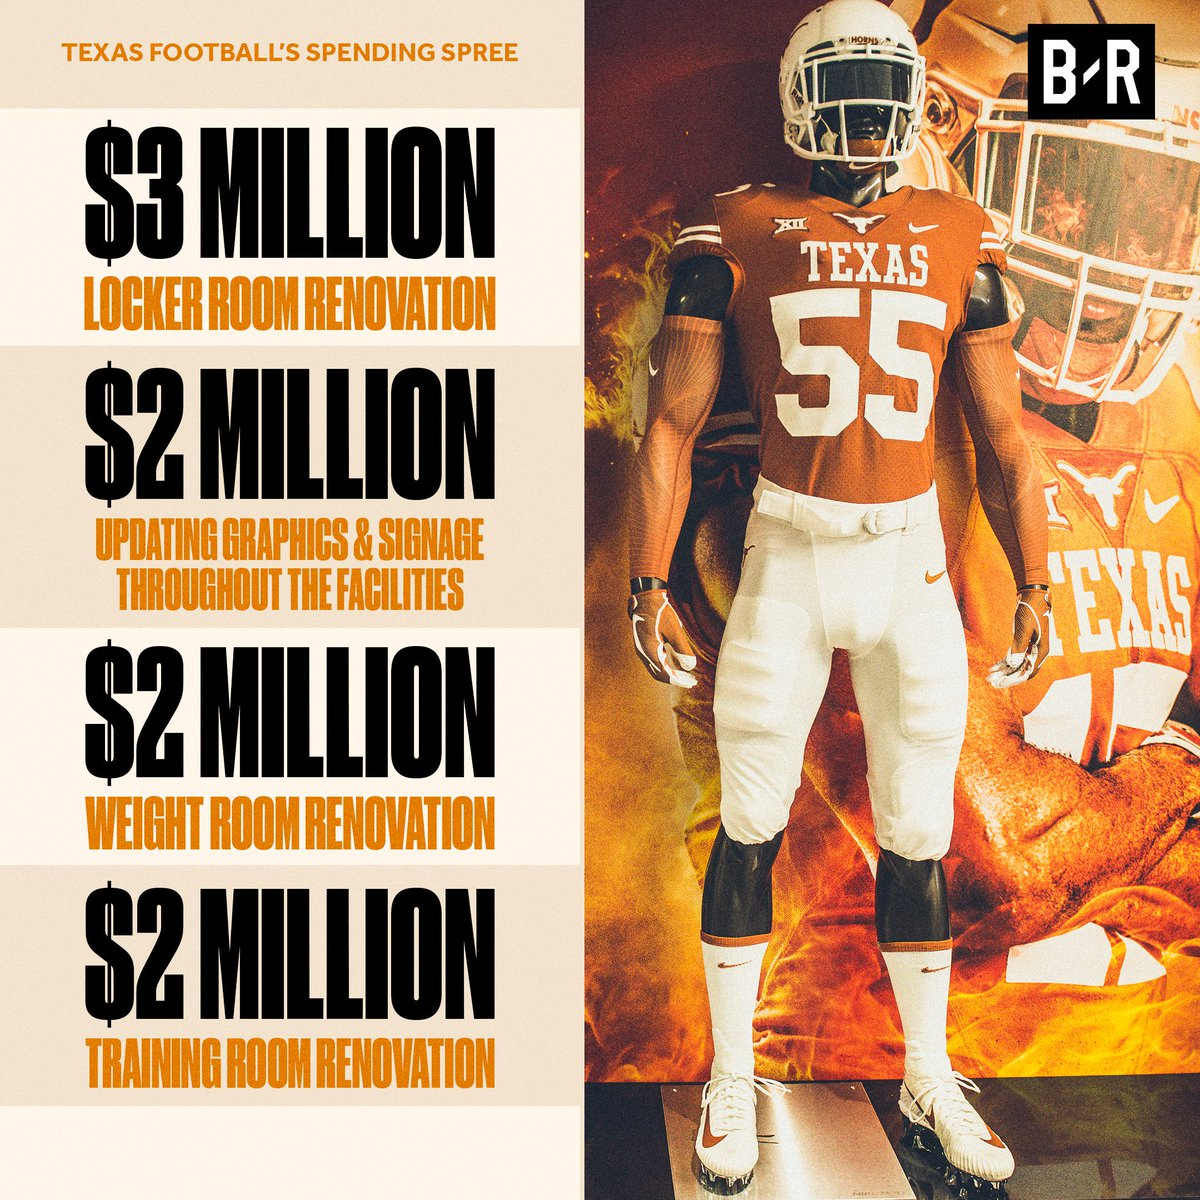 Texas football is already better...and Tom Herman hasn't even coached a game